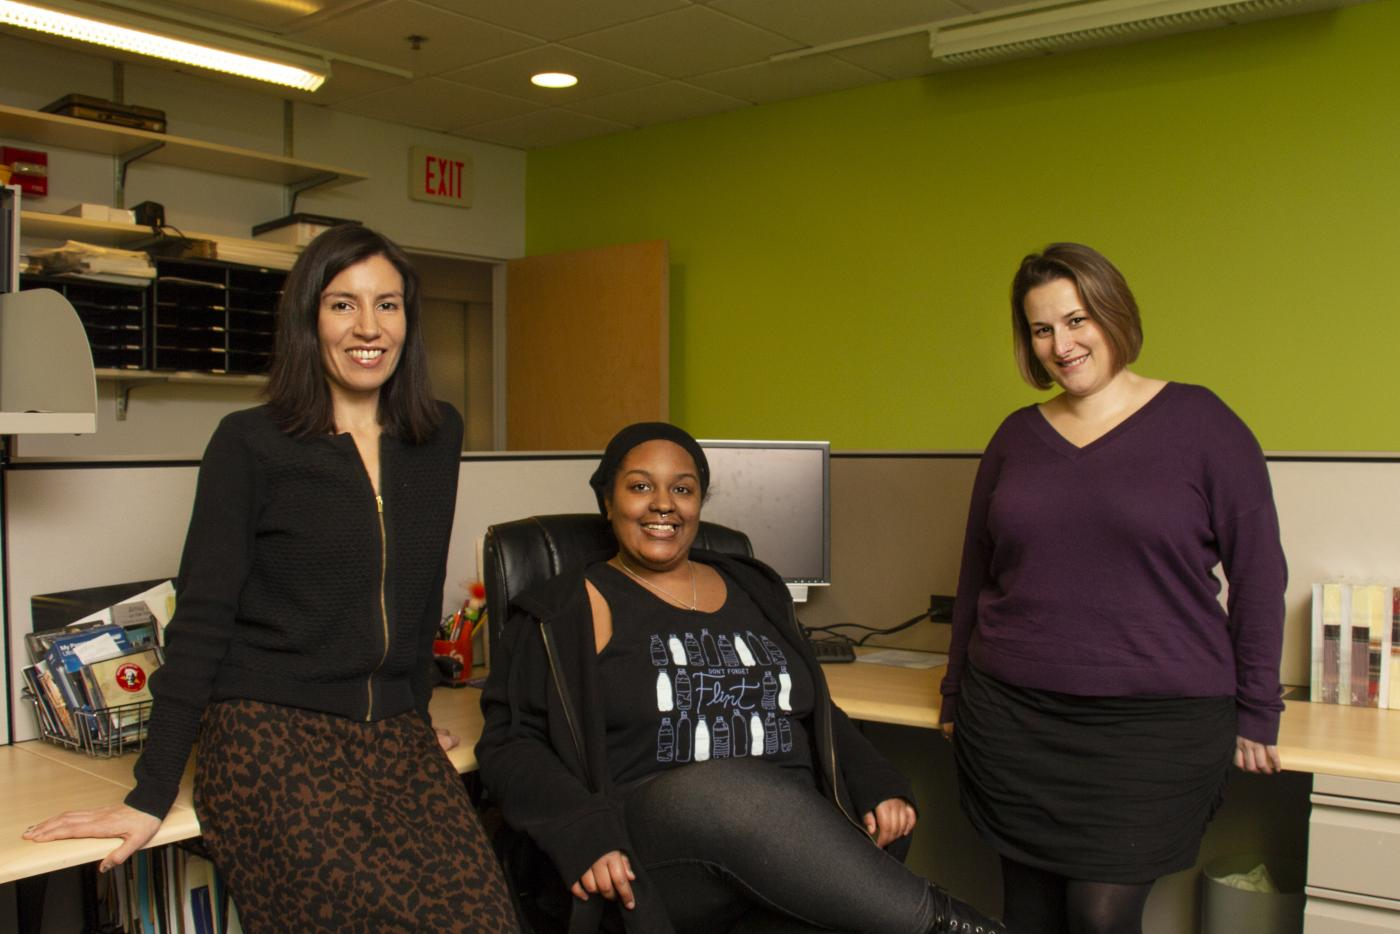 Three people pose and smile in an office cubicle.